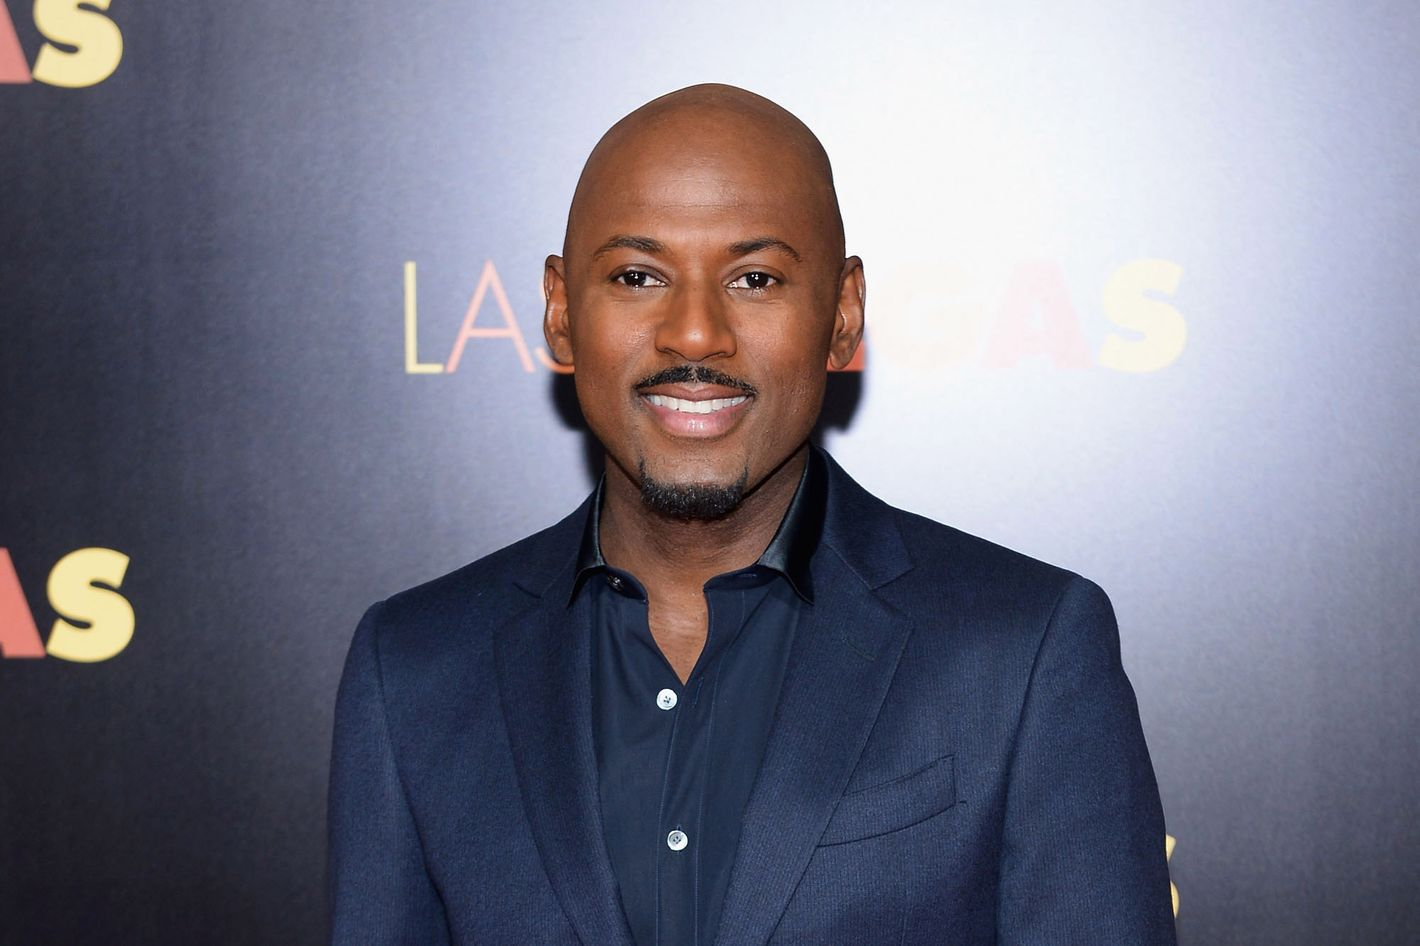 """Romany Malco attends the New York premiere of """"Last Vegas"""" at Ziegfeld Theater on October 29, 2013 in New York City."""